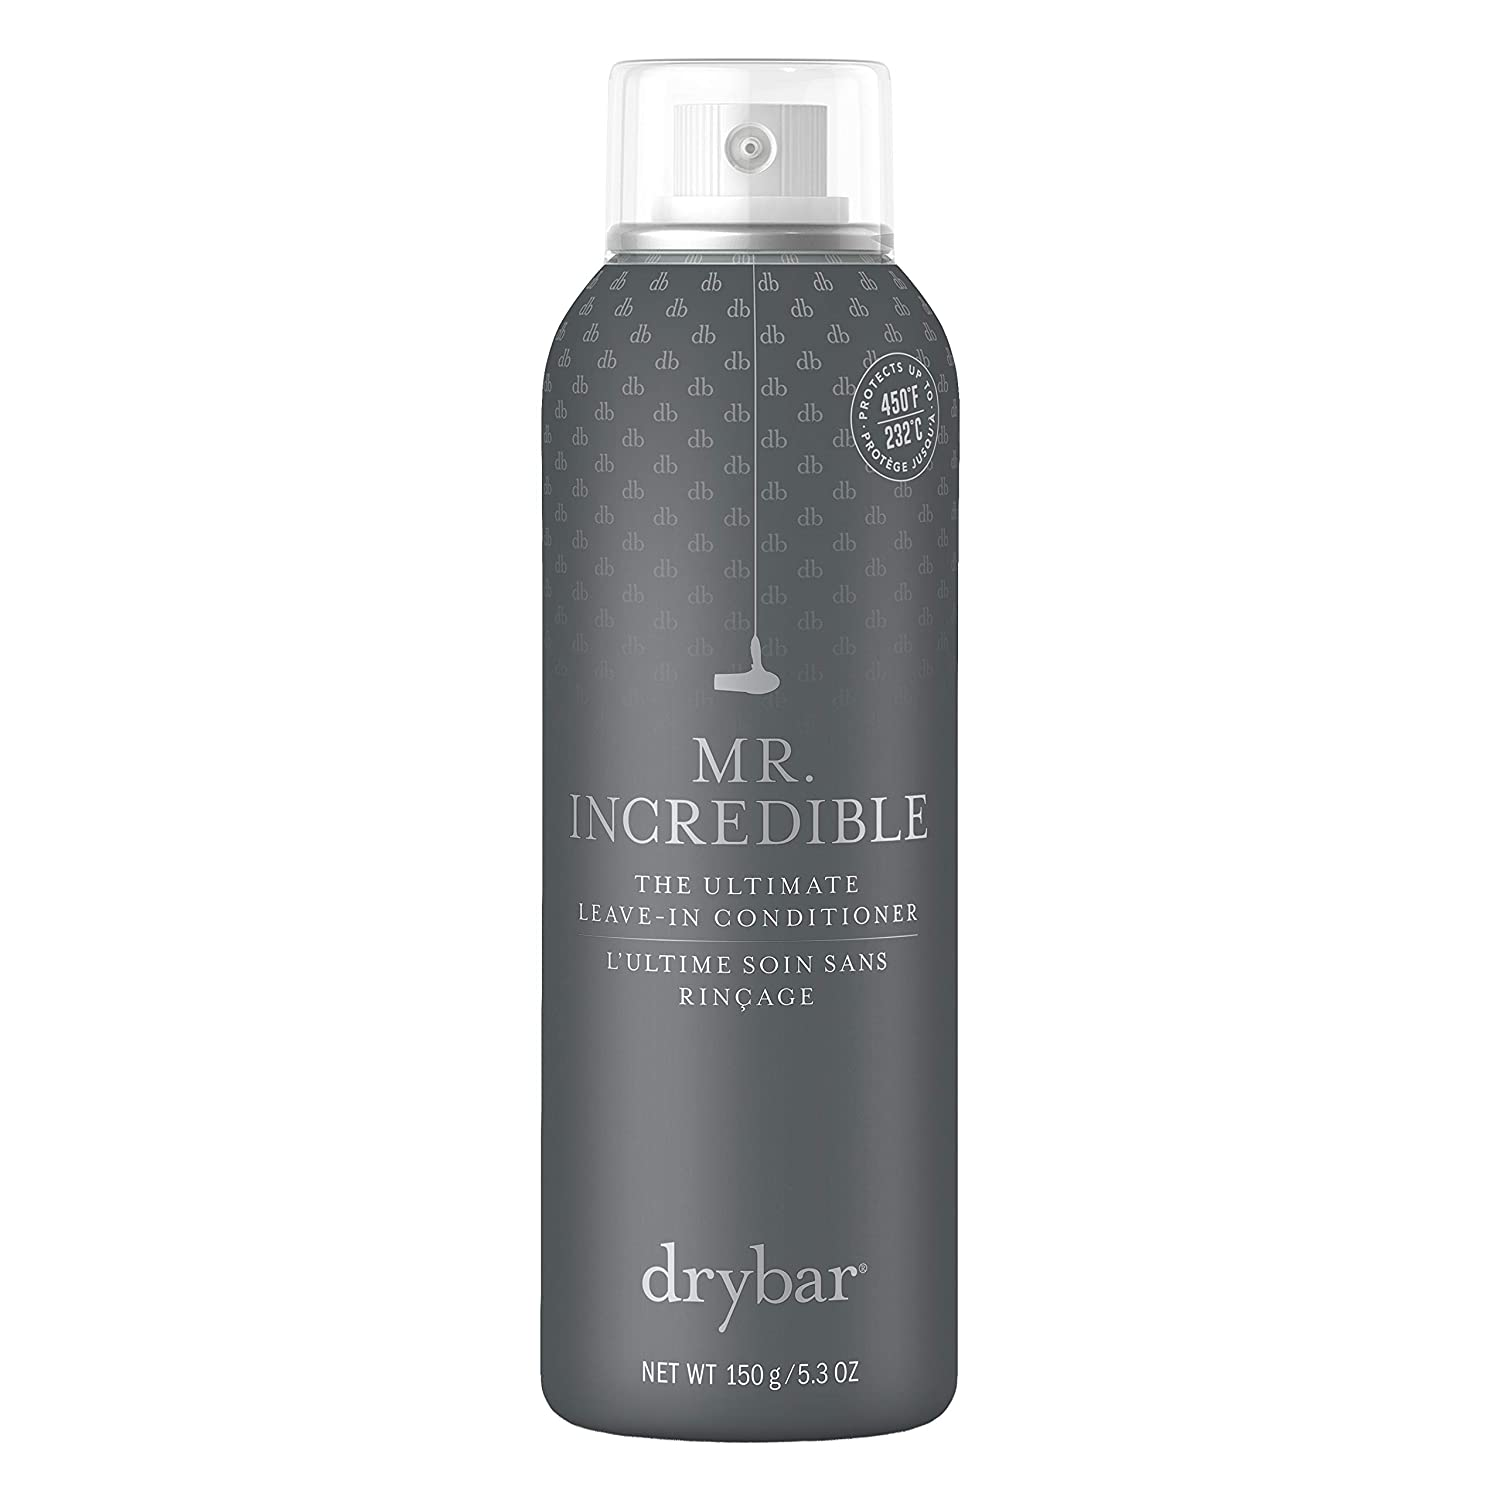 Drybar Mr. Incredible The Ultimate Leave-In Conditioner, 5.3 oz.